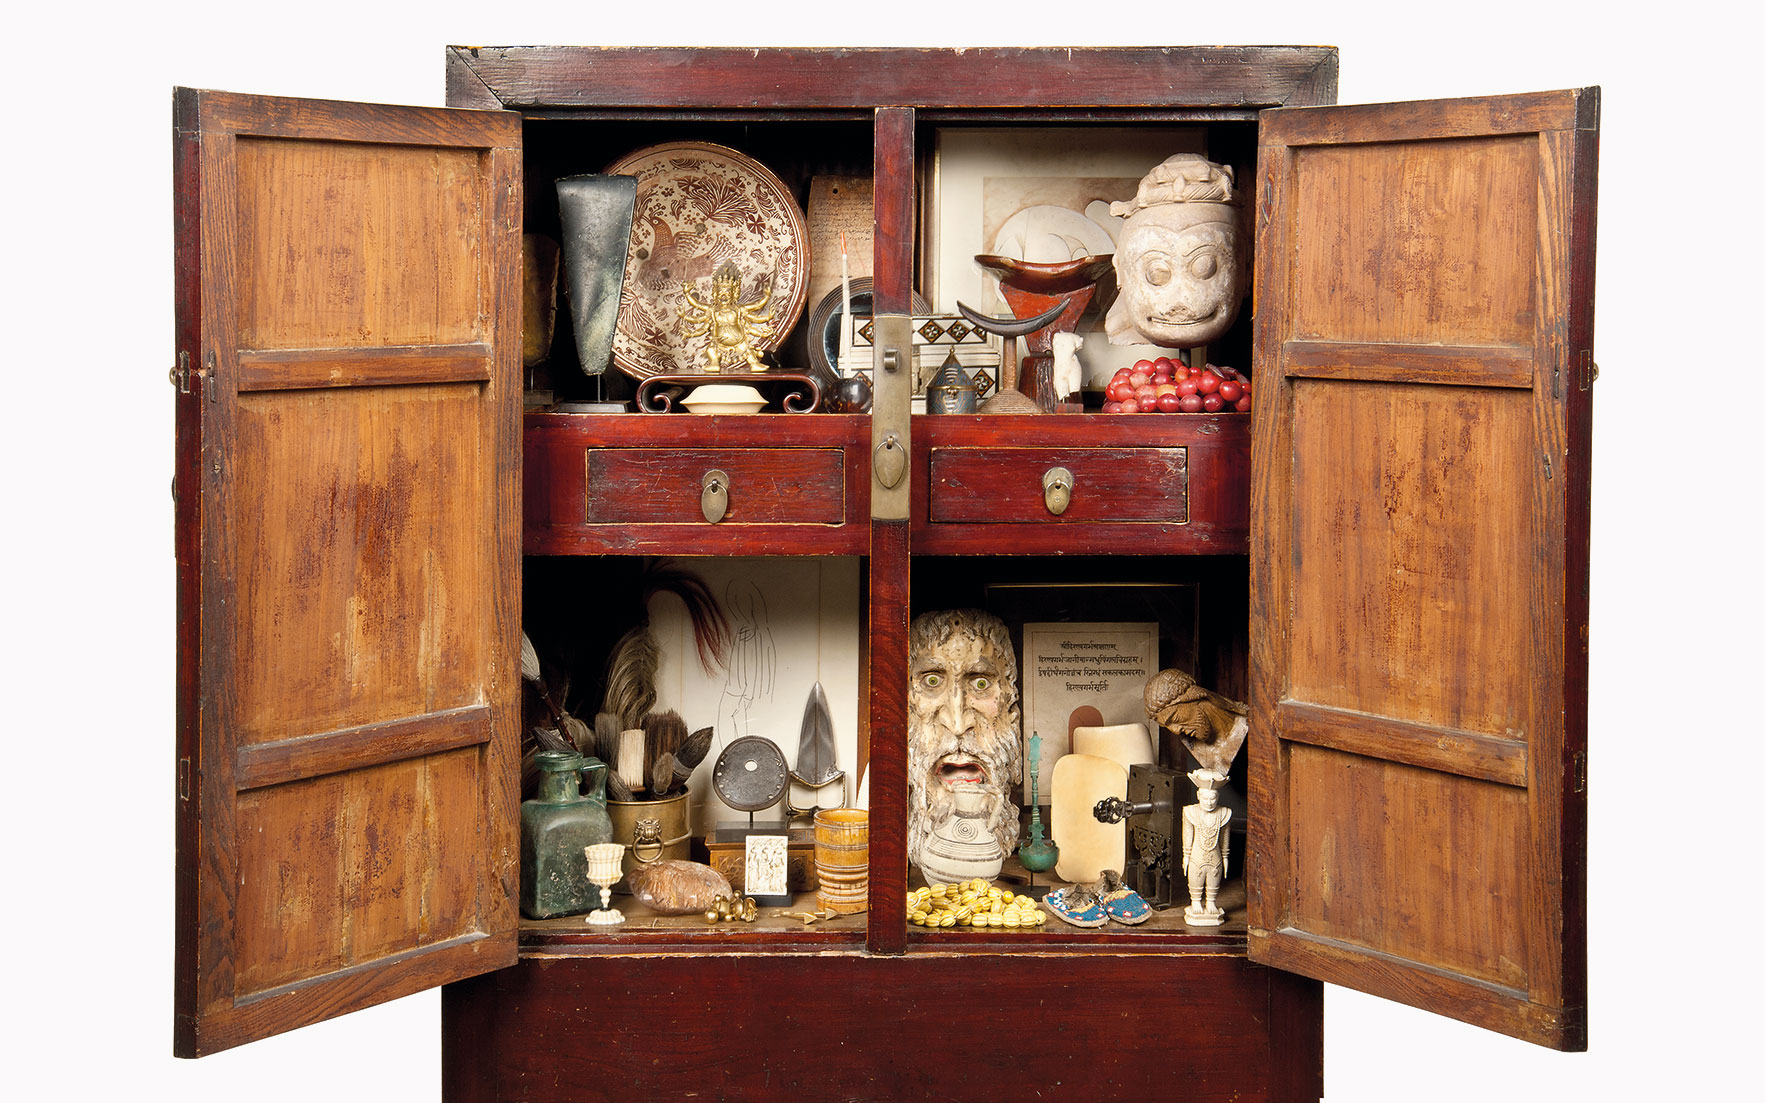 Inside a cabinet of curiosities